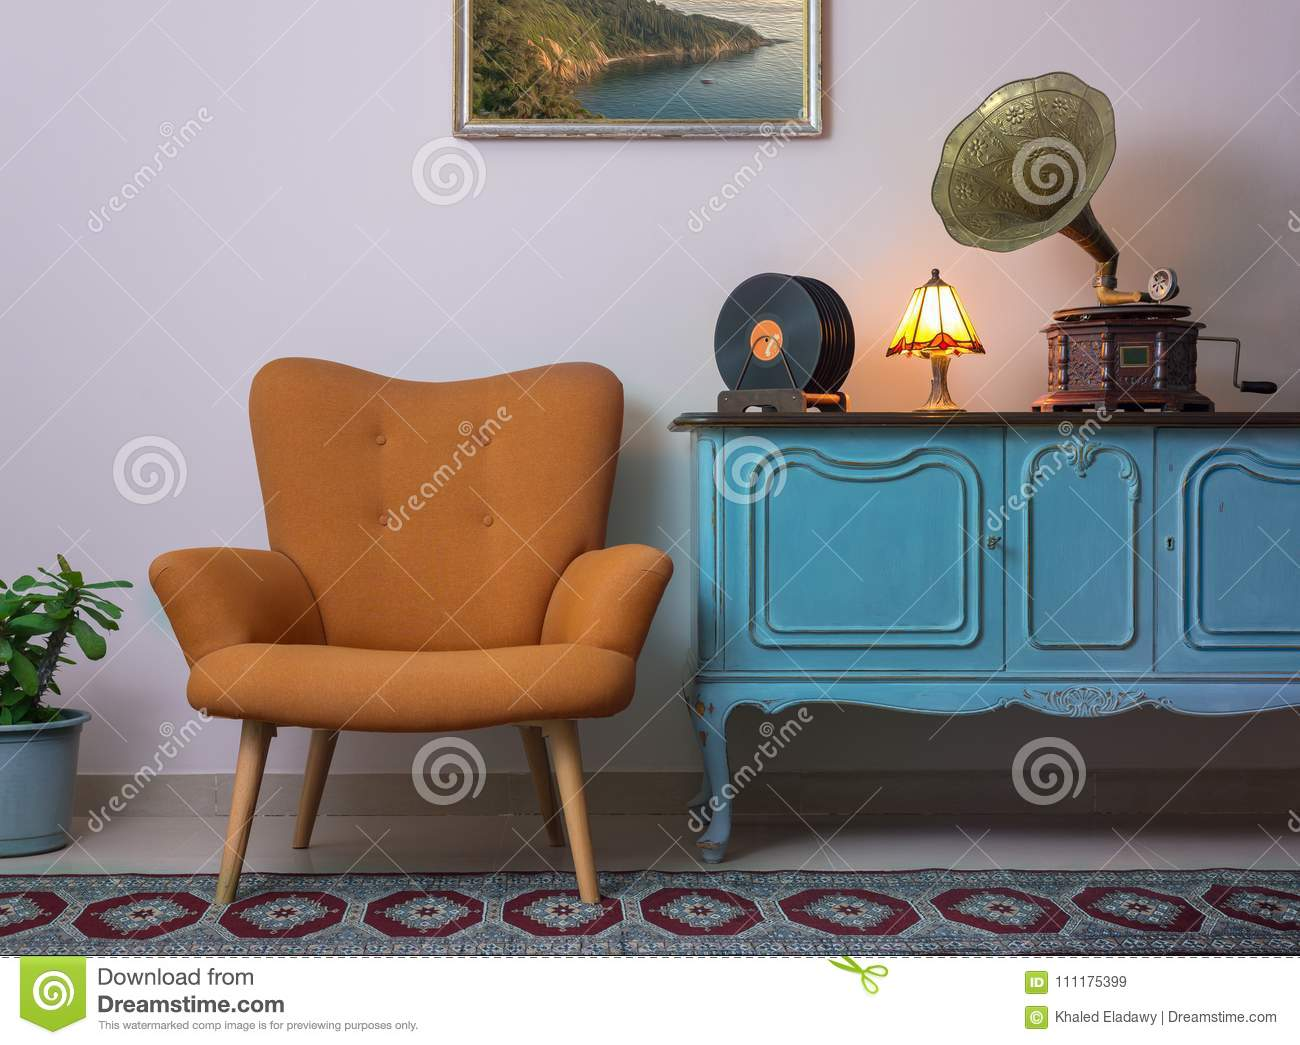 Vintage interior of retro orange armchair, vintage wooden light blue sideboard, old phonograph gramophone and vinyl records